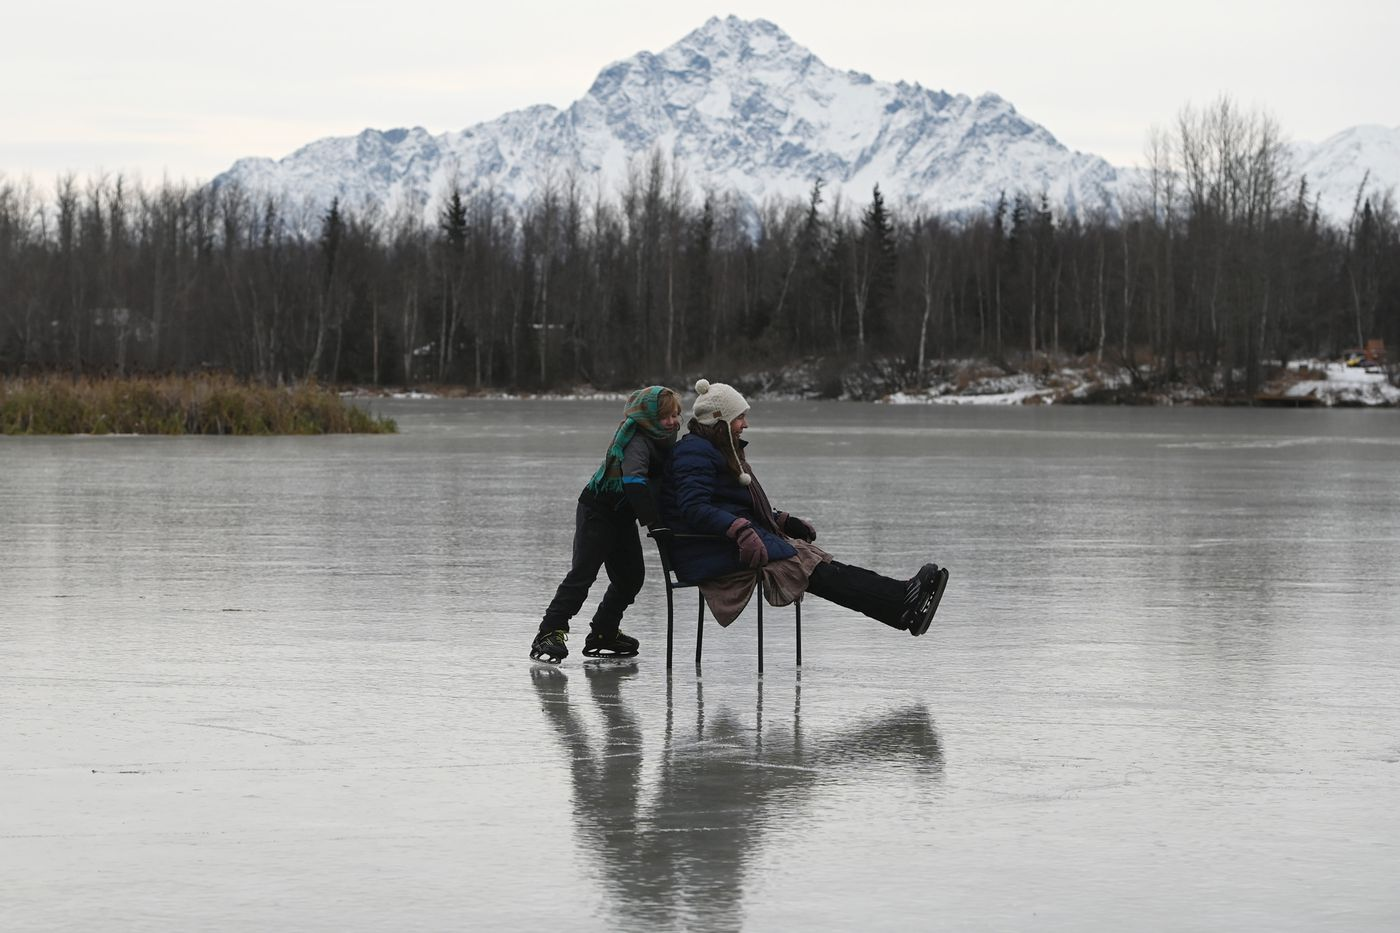 Ezra Gately, 7, pushes his mother Kara Sterling in a chair as they went ice skating for the first time this season at Finger Lake on Thursday, Nov. 5, 2020. Pioneer Peak is in the distance as clouds began to move in with snow in the forecast. (Bill Roth / ADN)